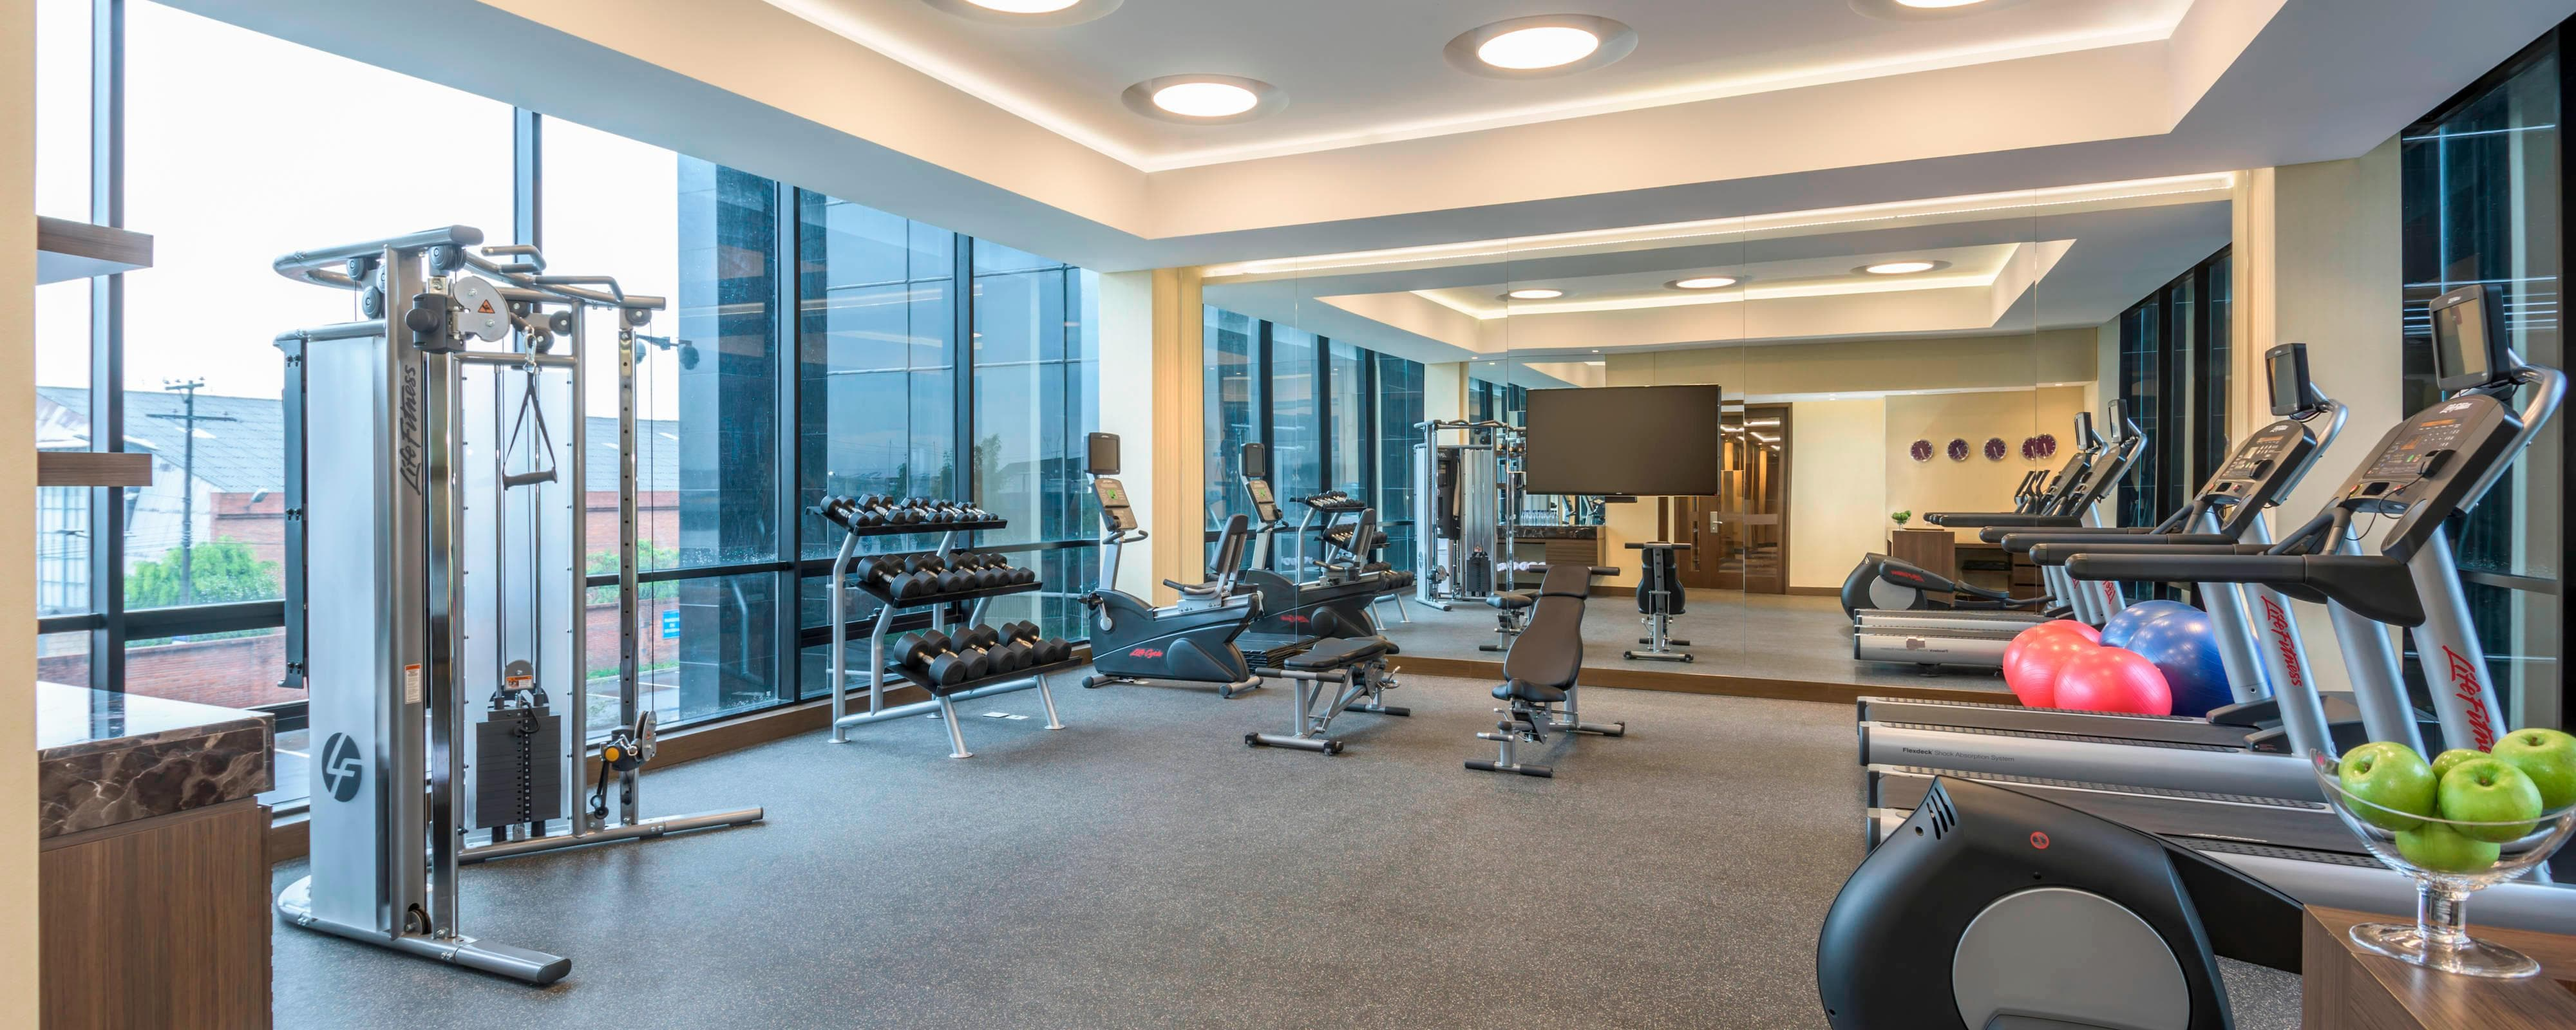 Airport Hotel Fitness Center